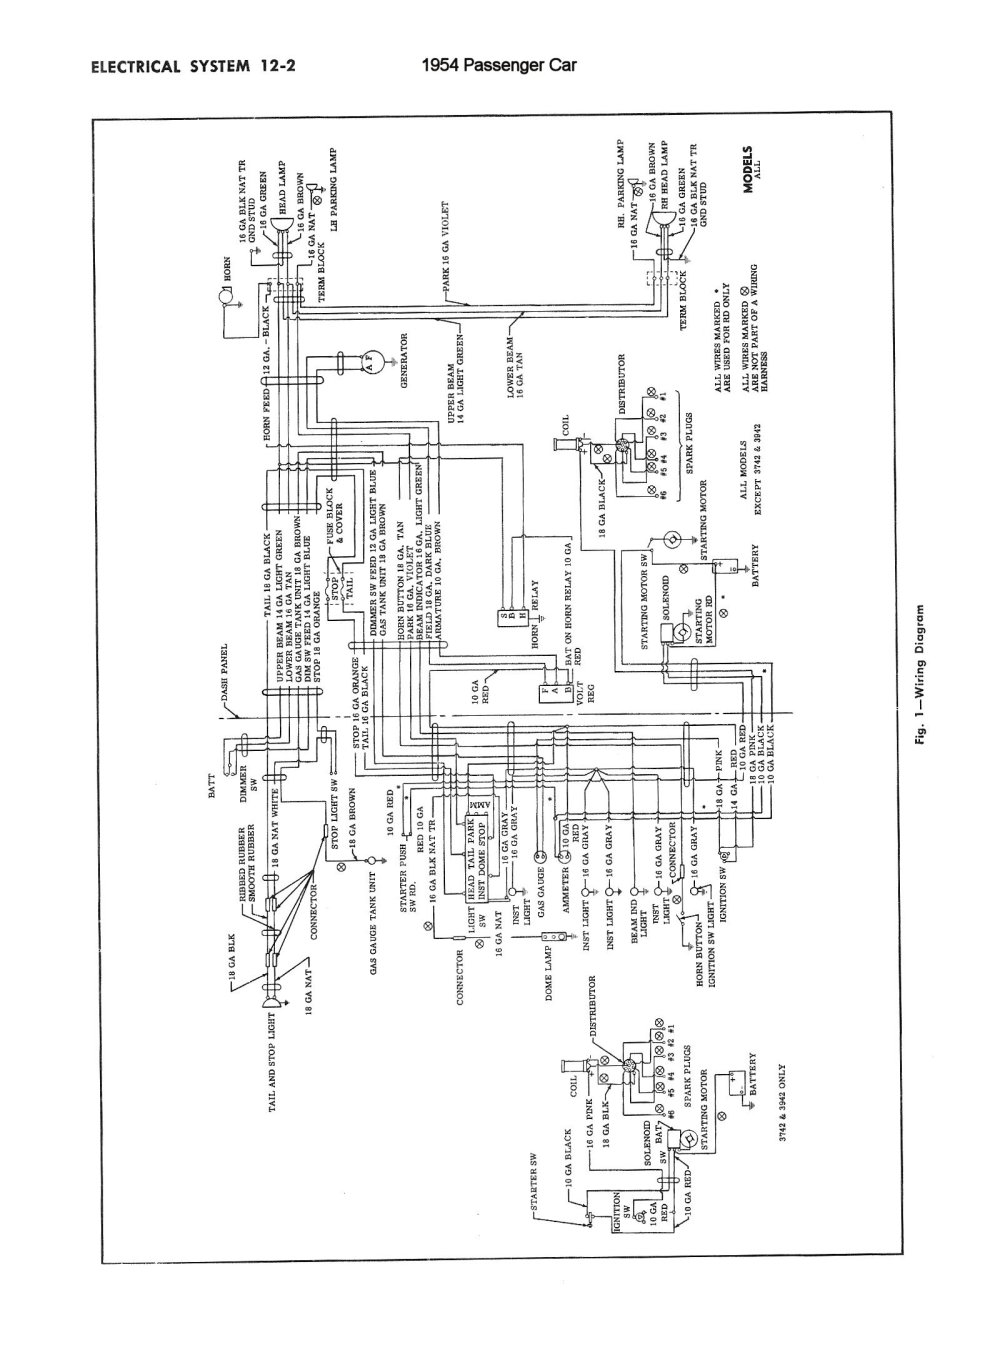 medium resolution of chevy wiring diagrams1954 truck wiring 1954 passenger car wiring 3